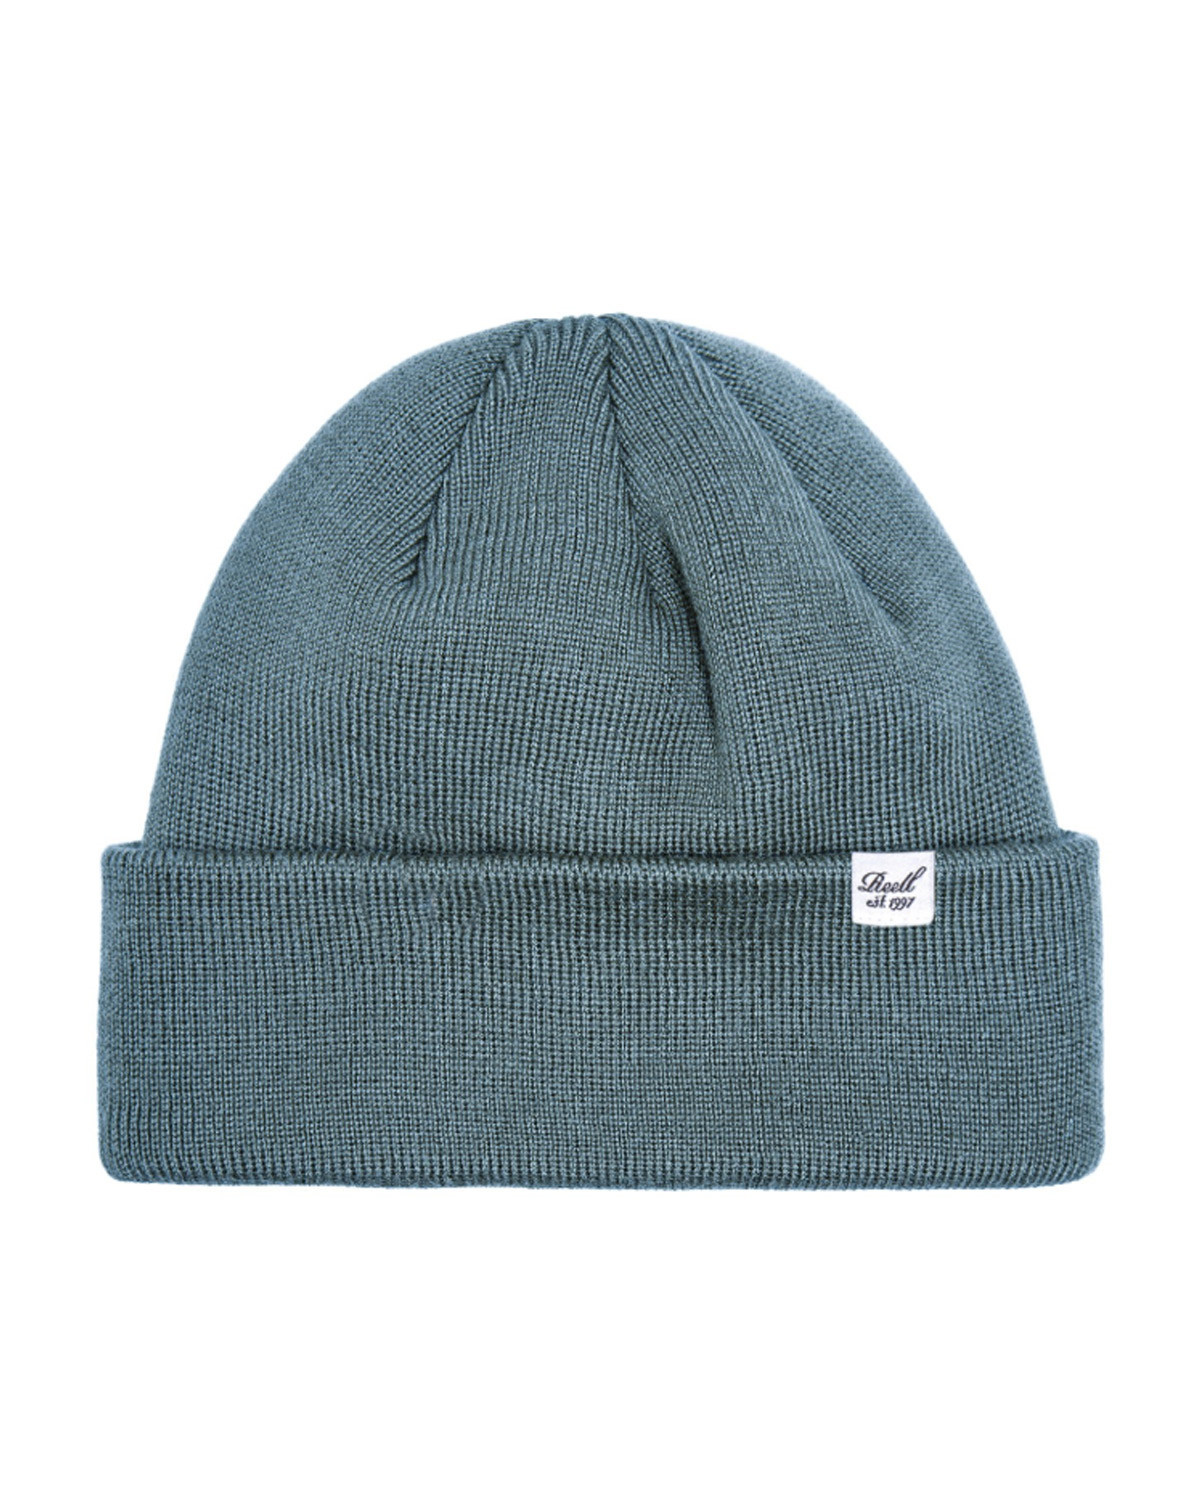 Image of   Reell Beanie (Blågrå, One Size)